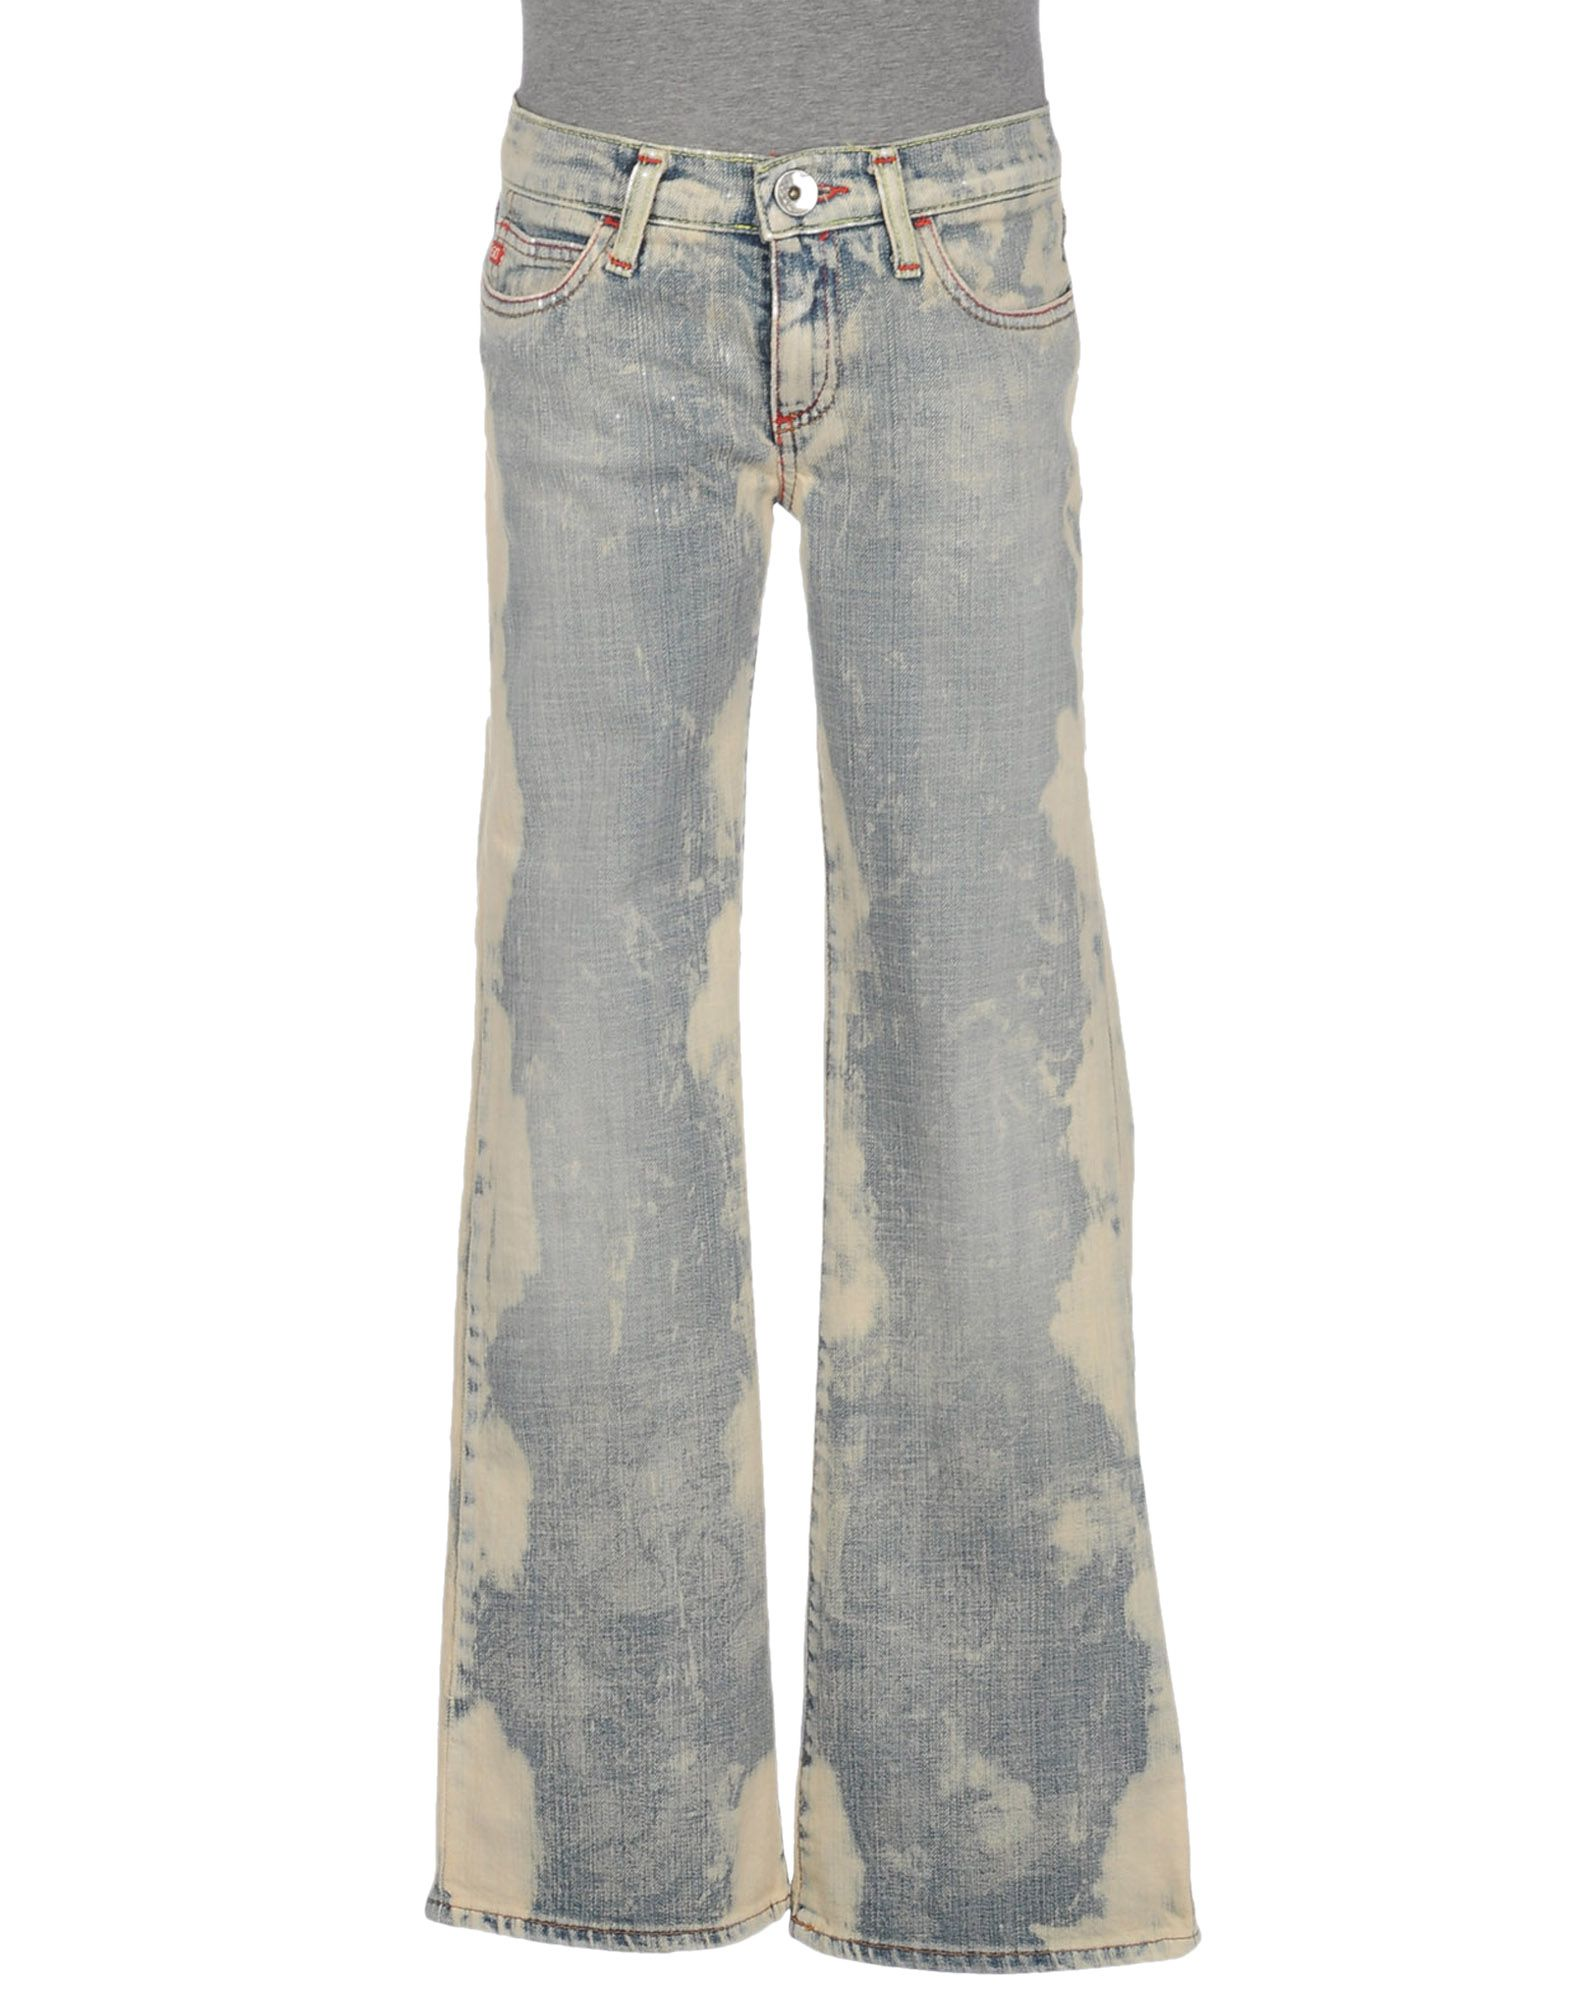 MISS SIXTY Jeans - Item 42209190